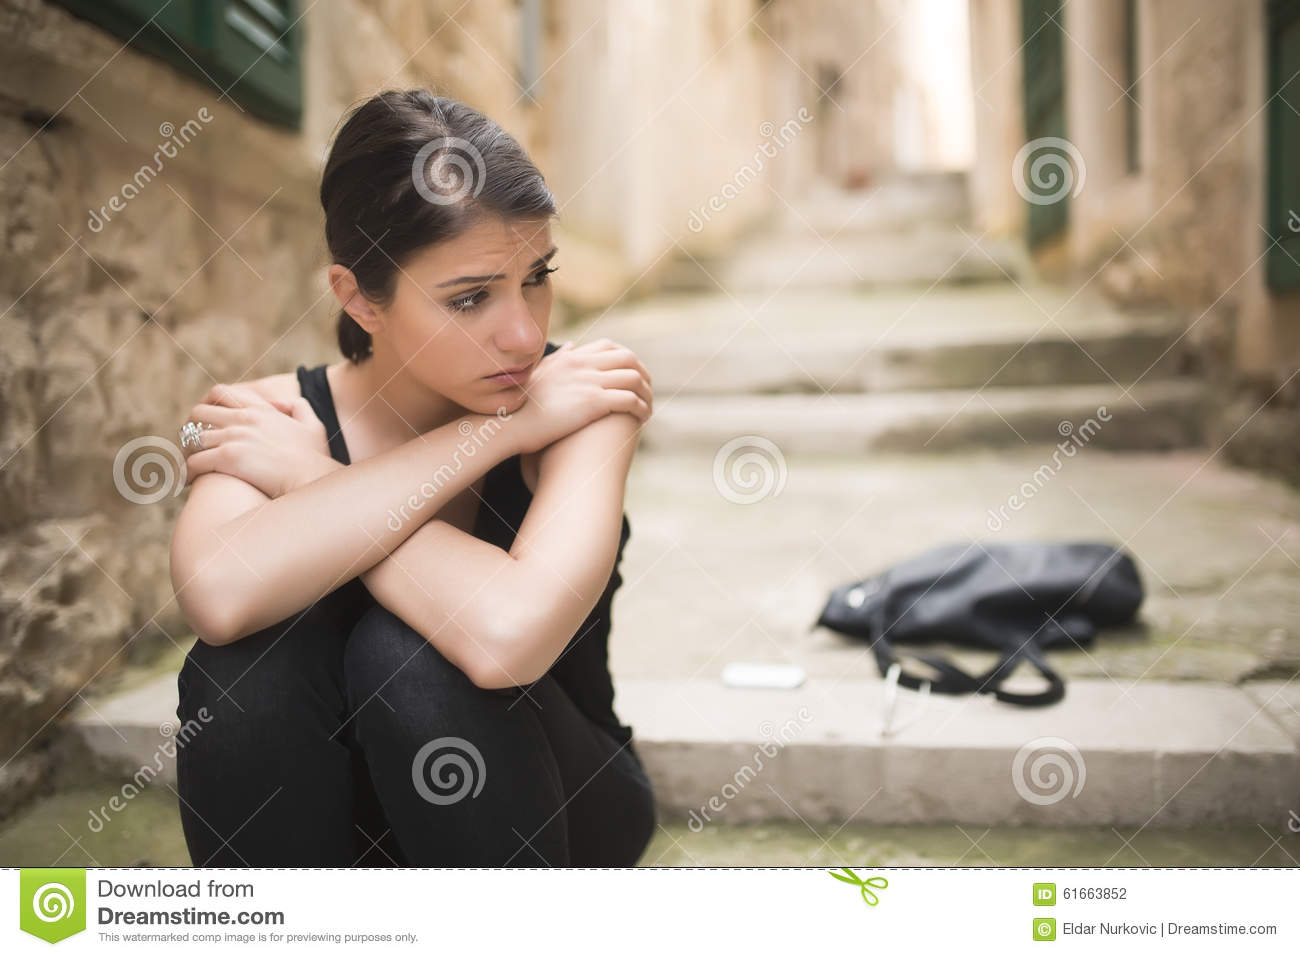 Woman with sad face crying. Sad expression, sad emotion, despair, sadness. Woman in emotional stress and pain. Woman sitting alone